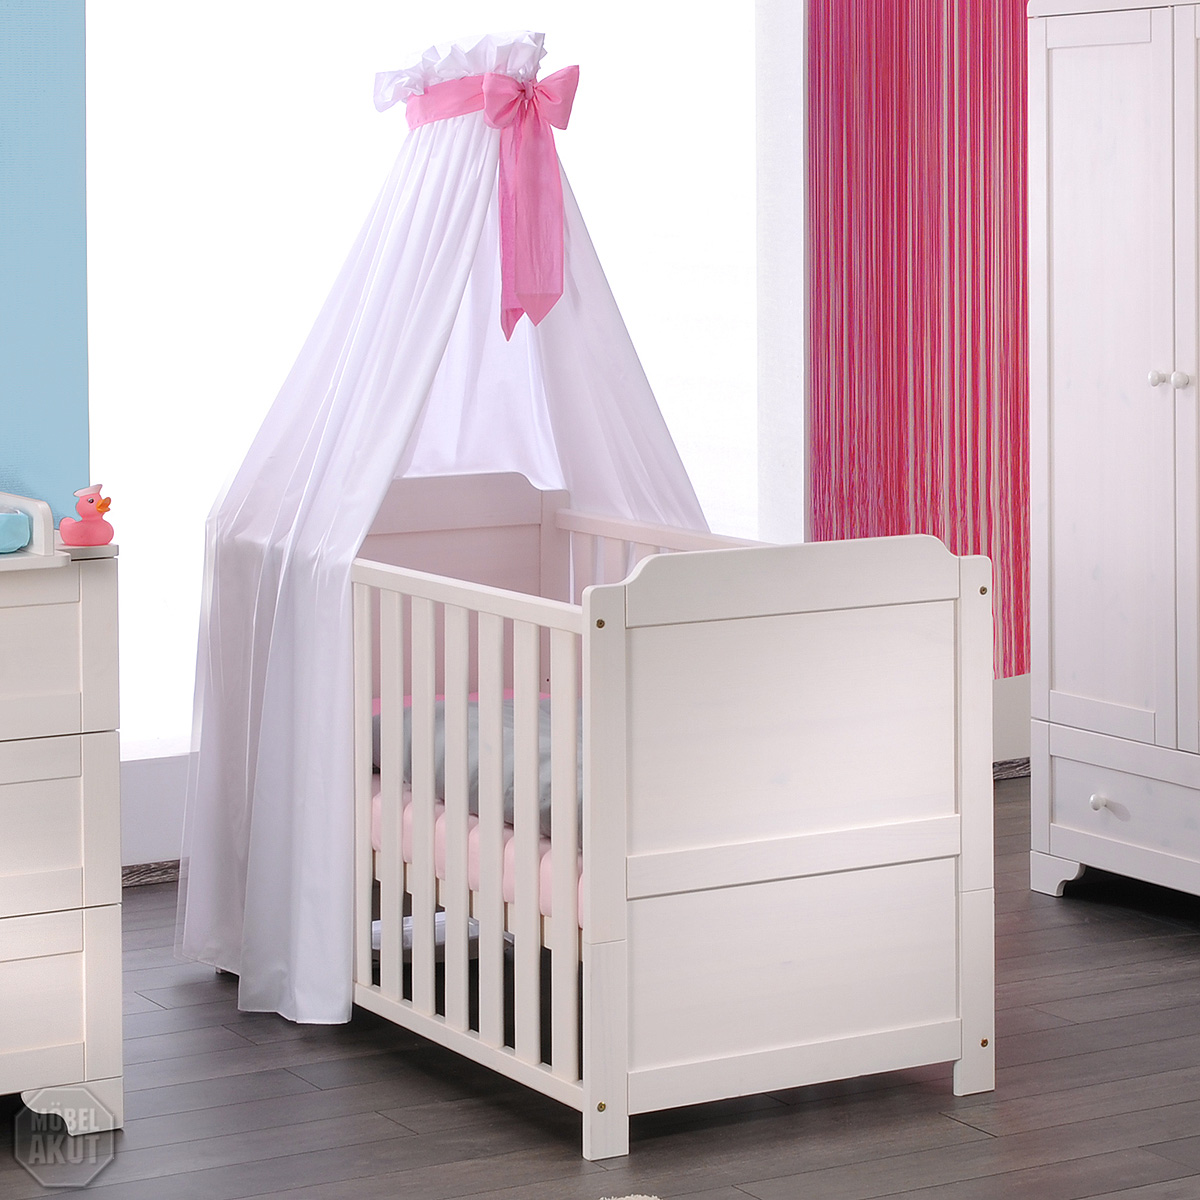 babybett vita kinderbett babyzimmer in kiefer massiv wei. Black Bedroom Furniture Sets. Home Design Ideas